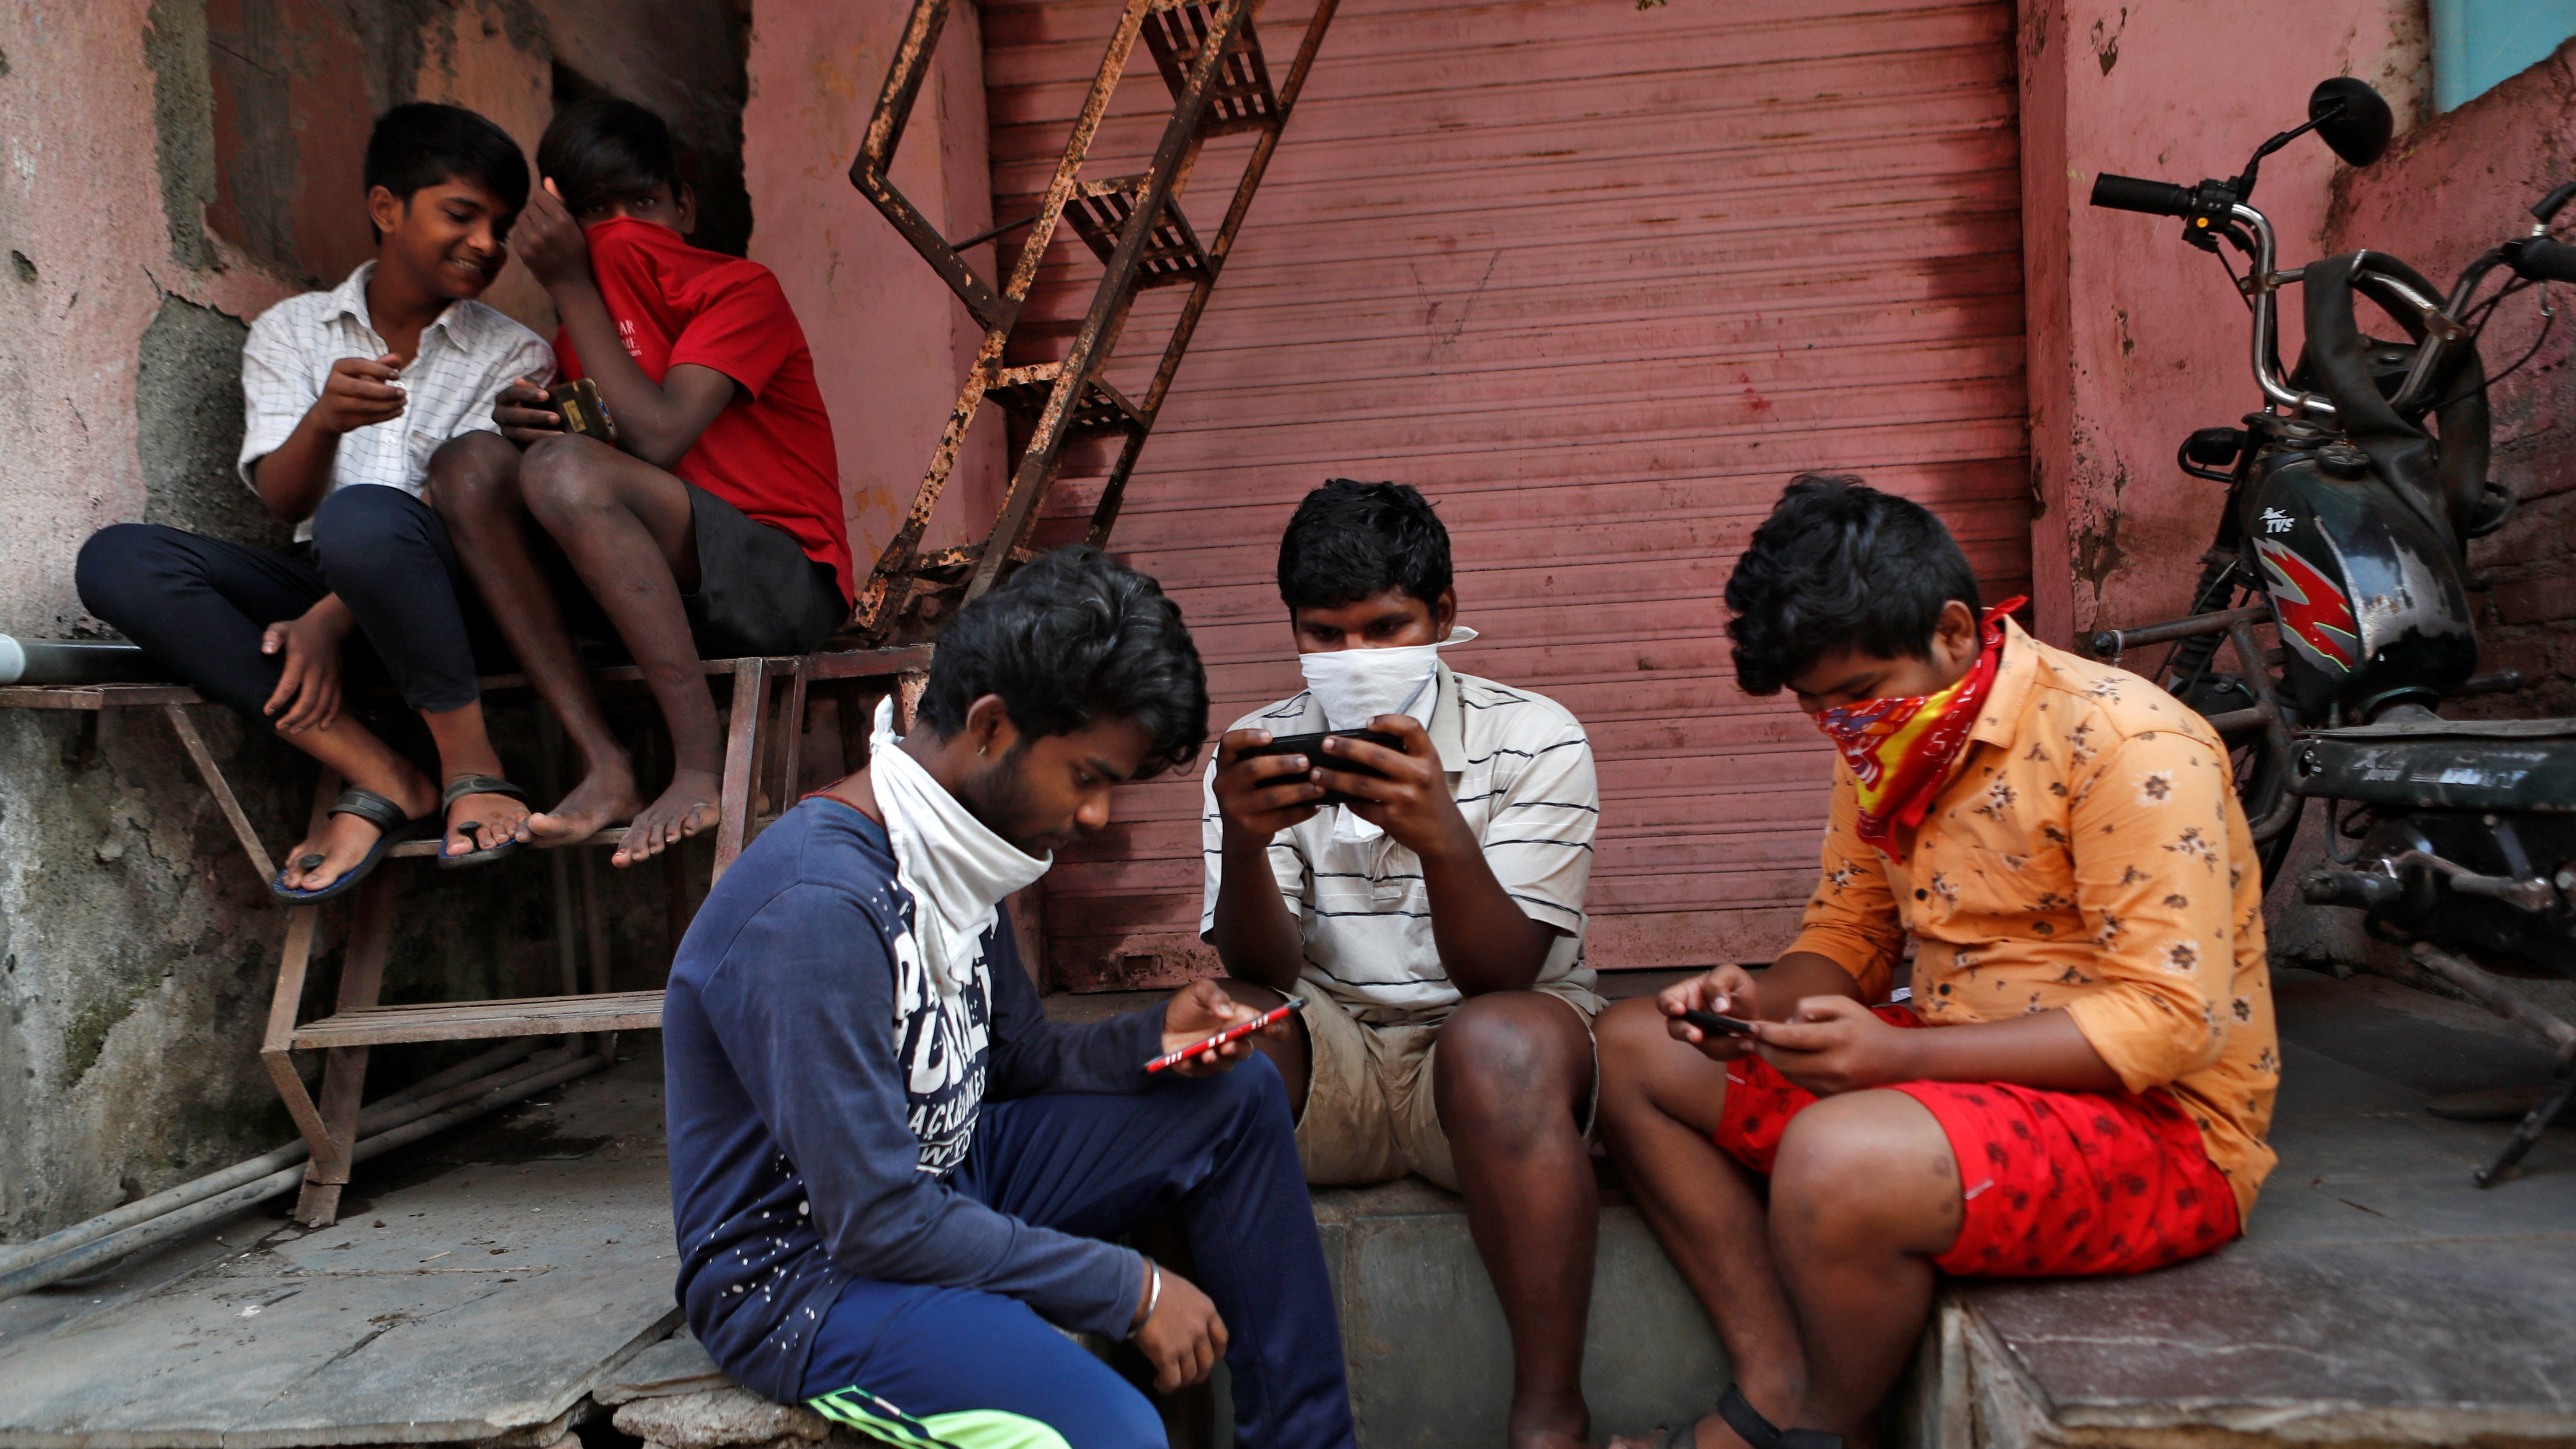 The Wider Image: Indians build their own lockdown barricades in the country's slums